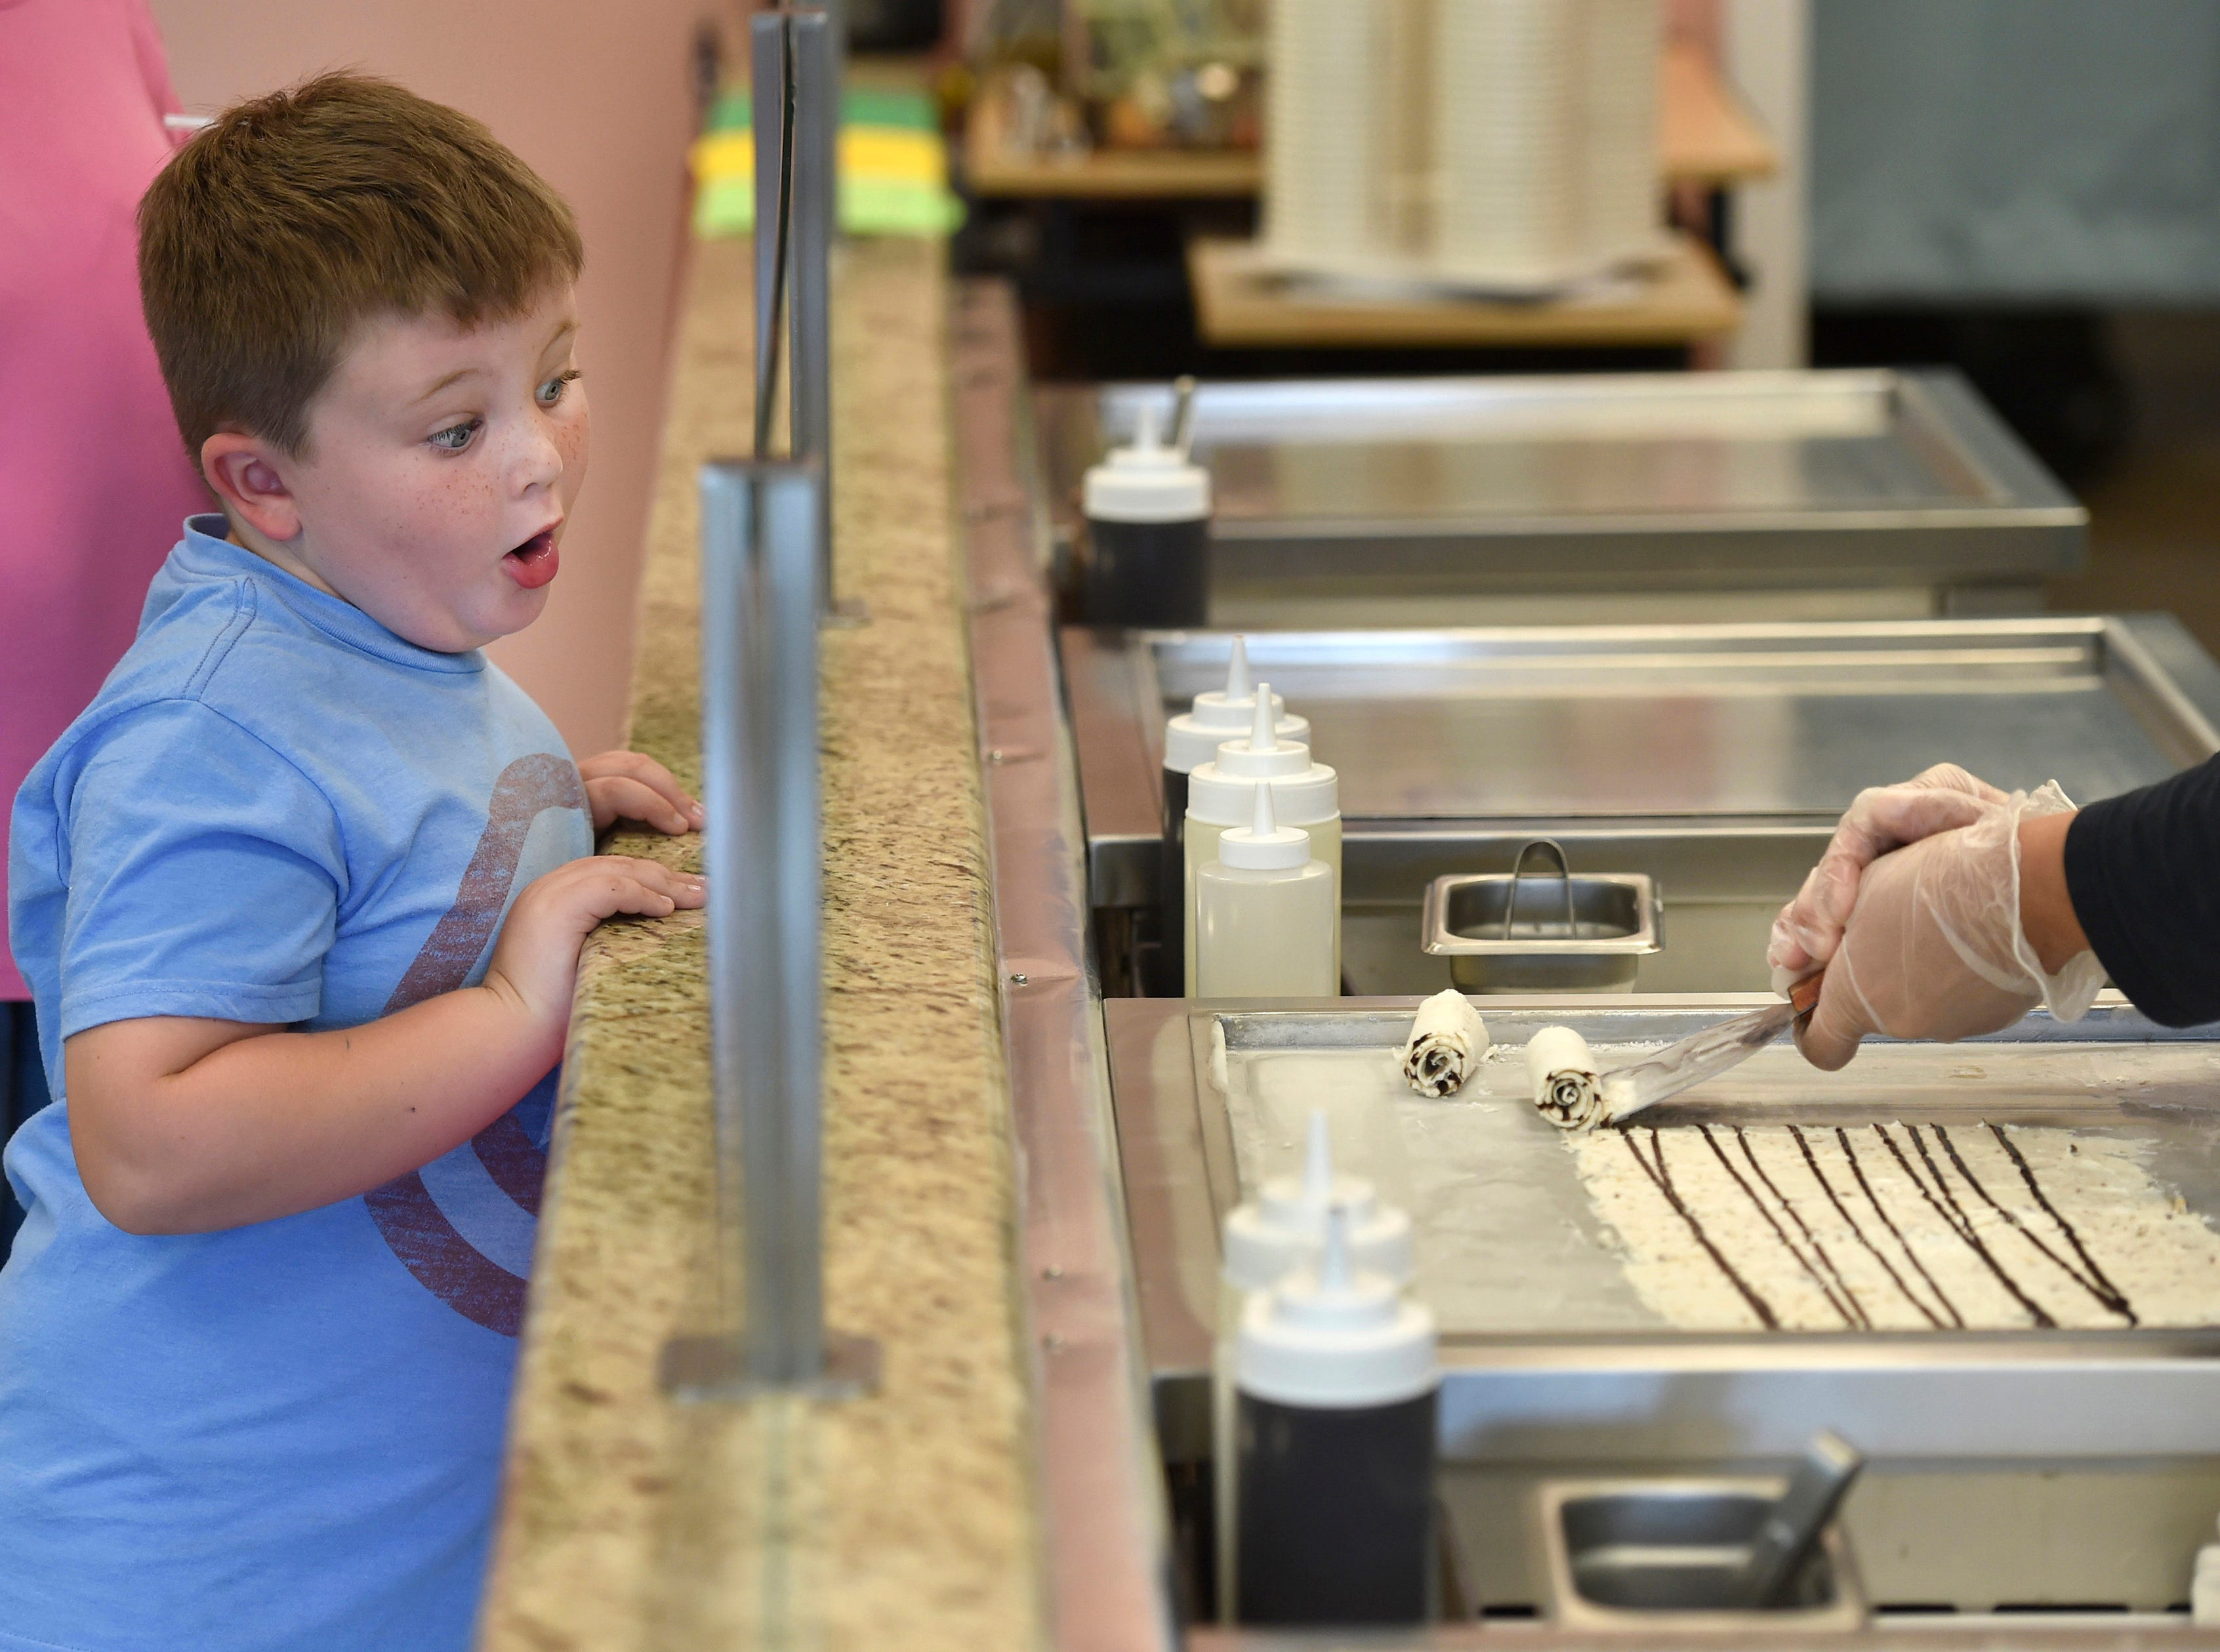 Malcolm Beauchamp, 5, of Vero Beach, watches the hands of Yasmin Falix, an employee of Steel N Roll, Rolling Ice Cream & More, as she makes an order for another customer. Malcolm thought the best part of the ice cream making process was watching the ice cream being rolled. Malcolm was being treated to a serving of ice cream by his grandmother Linda MacMenigall (far left).